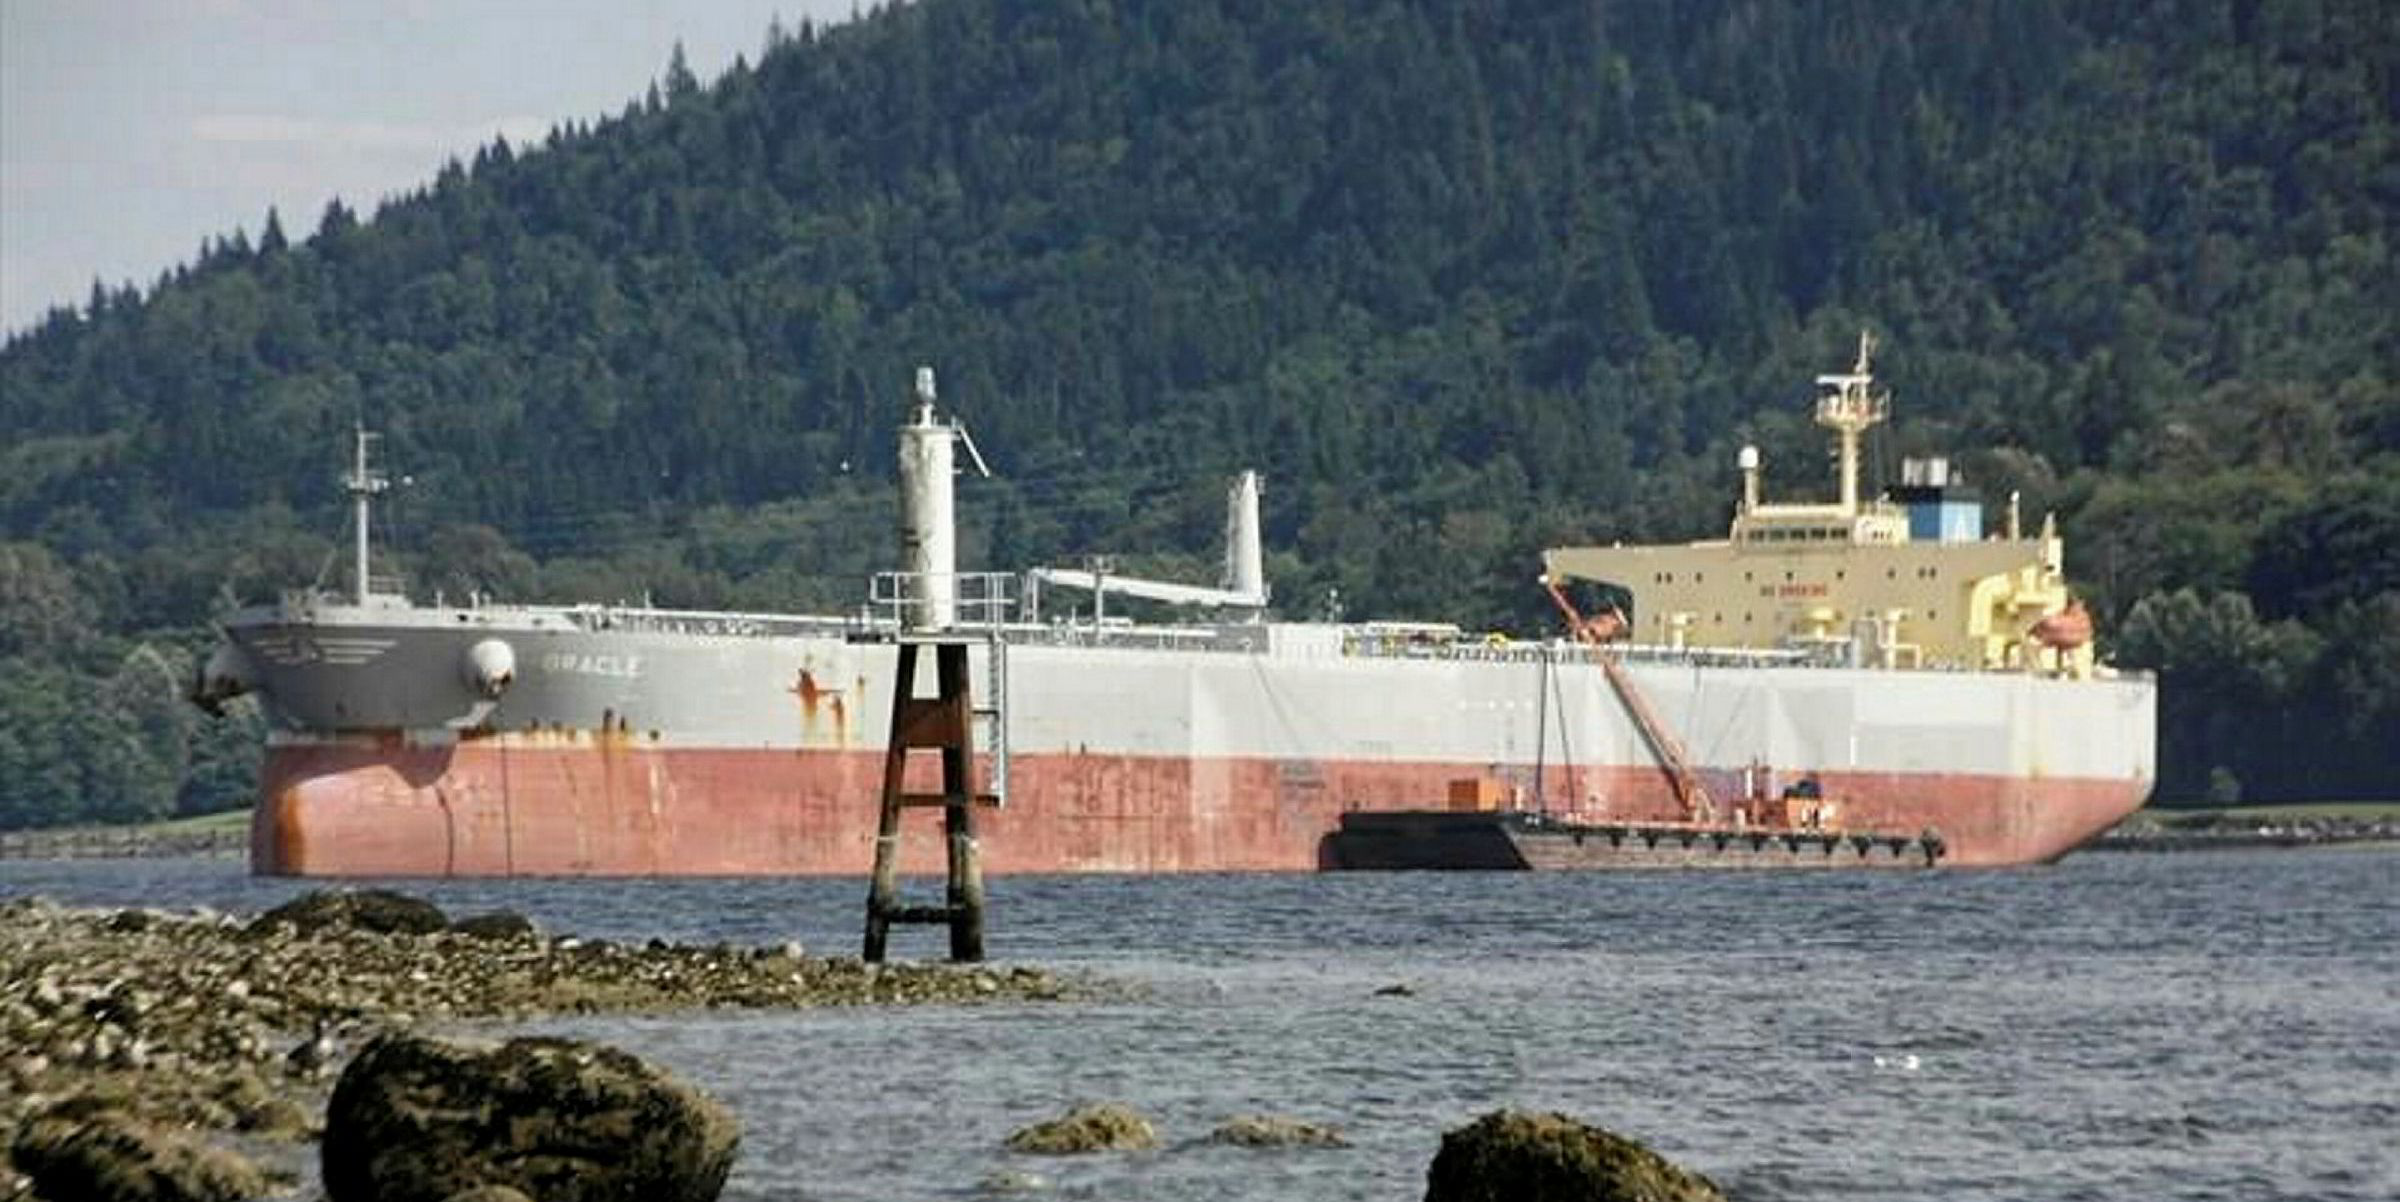 Samos Steamship Strikes Charter Deal With Alaska Tanker Tradewinds